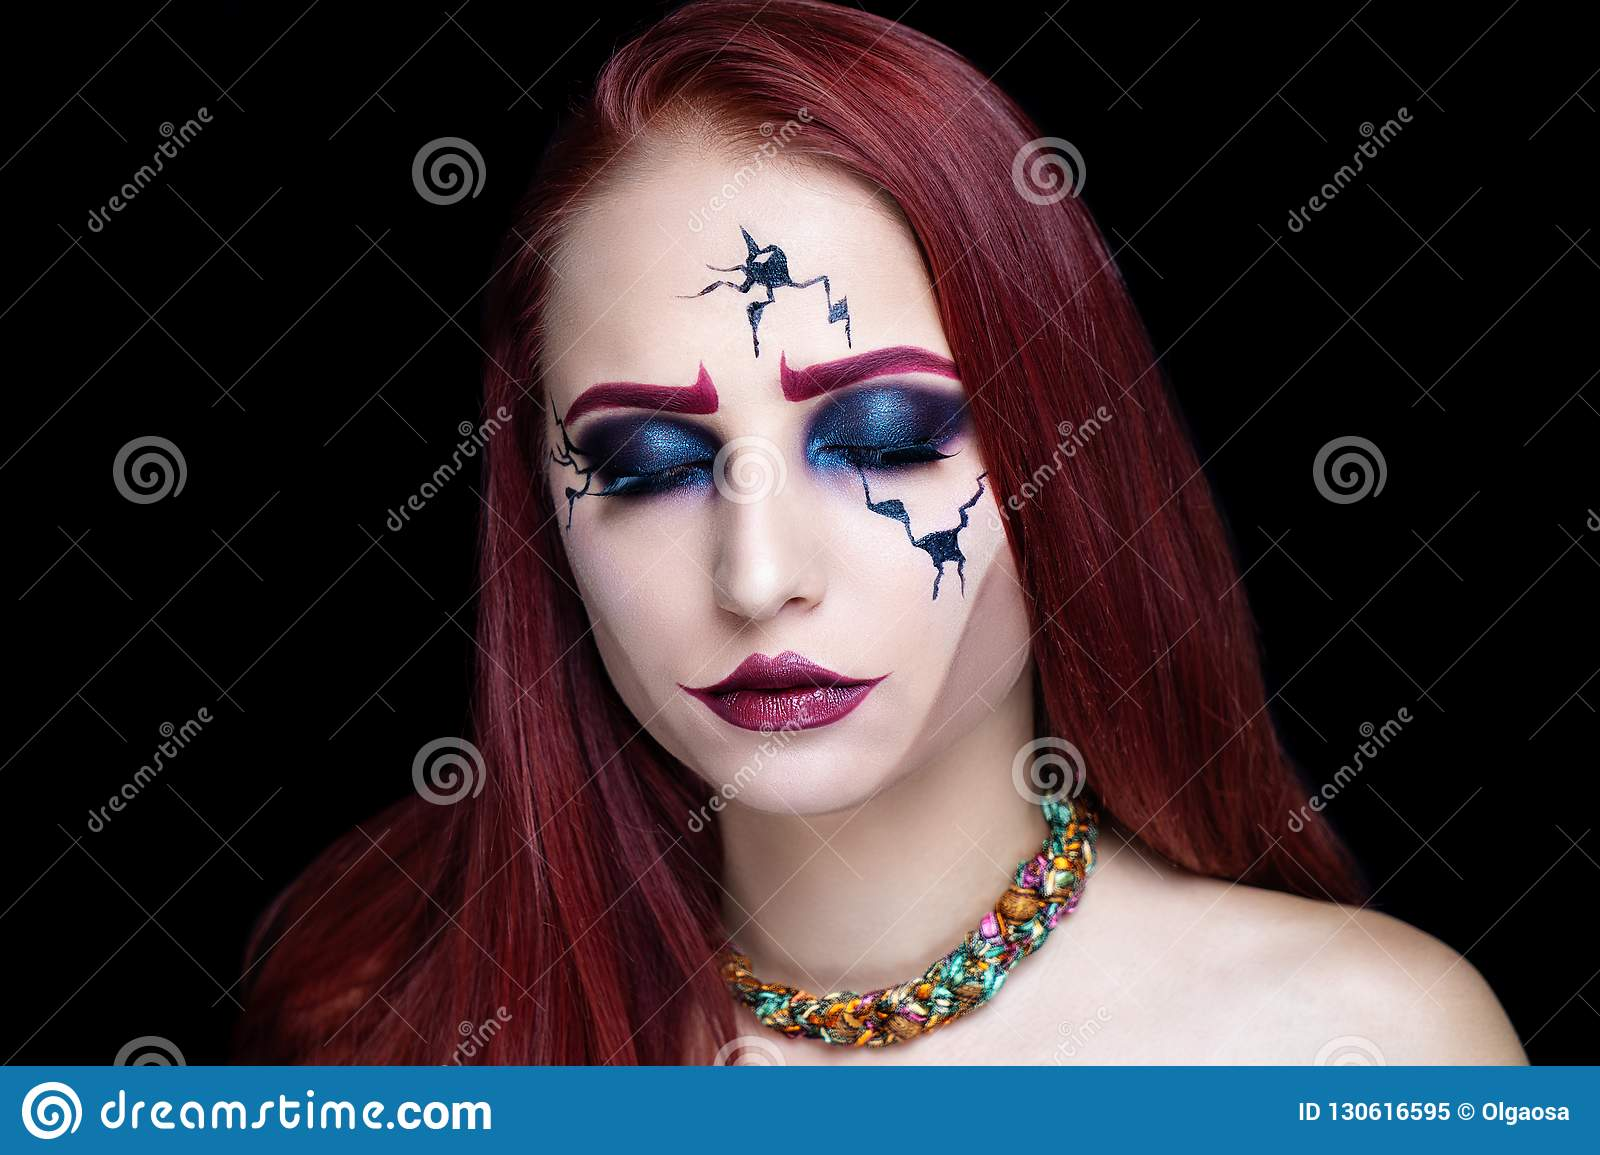 Creative makeup for Halloween party, black lines of cracks on model face. Sad eyes with blue shadows, hard intensive contouring cheekbones.